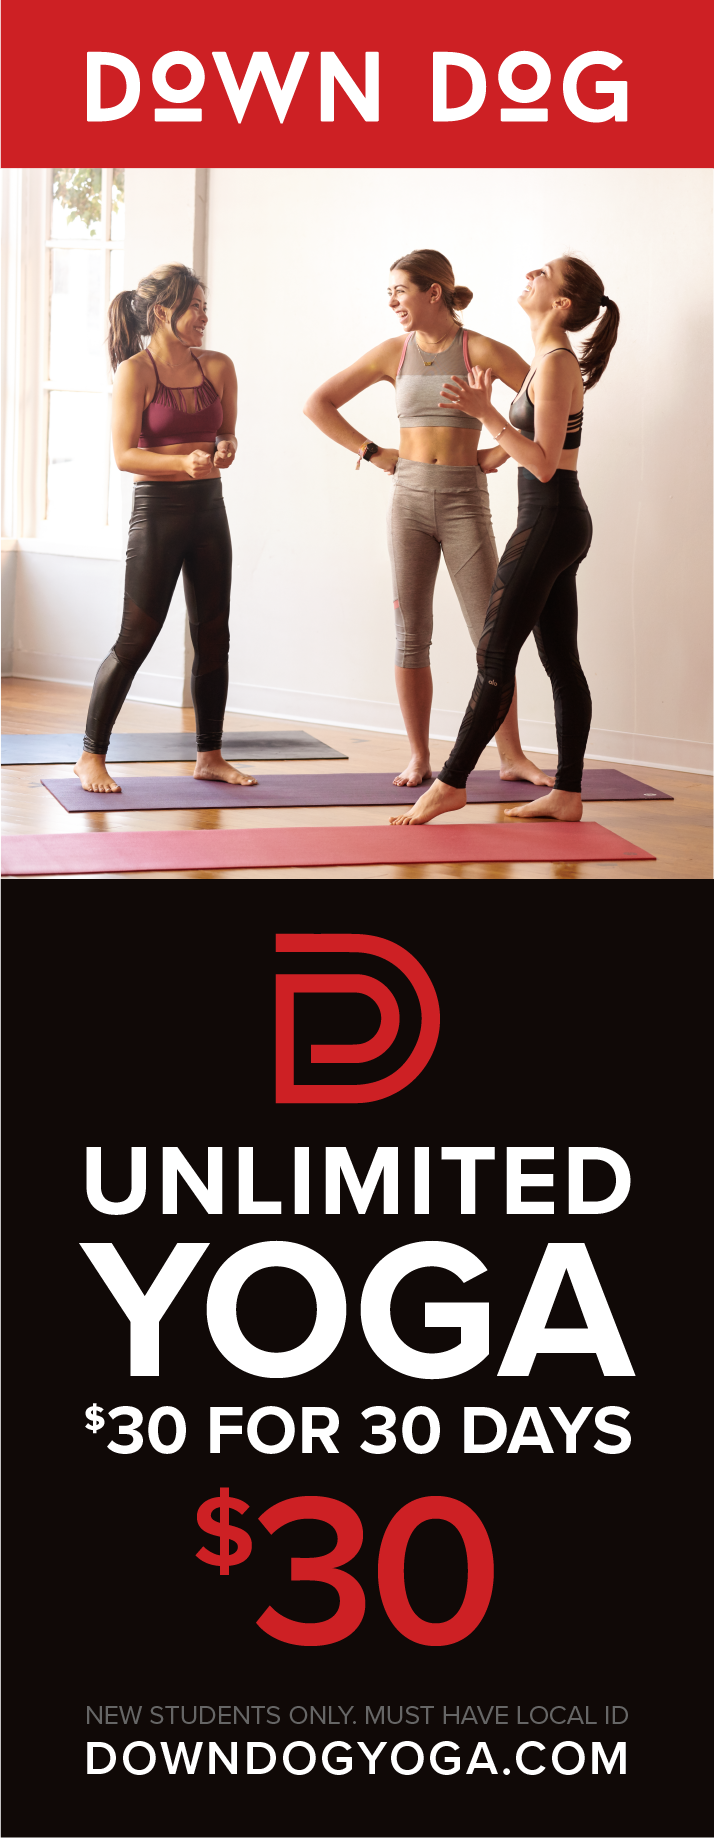 Down-Dog-Yoga-Georgetowner-Ad-01.png